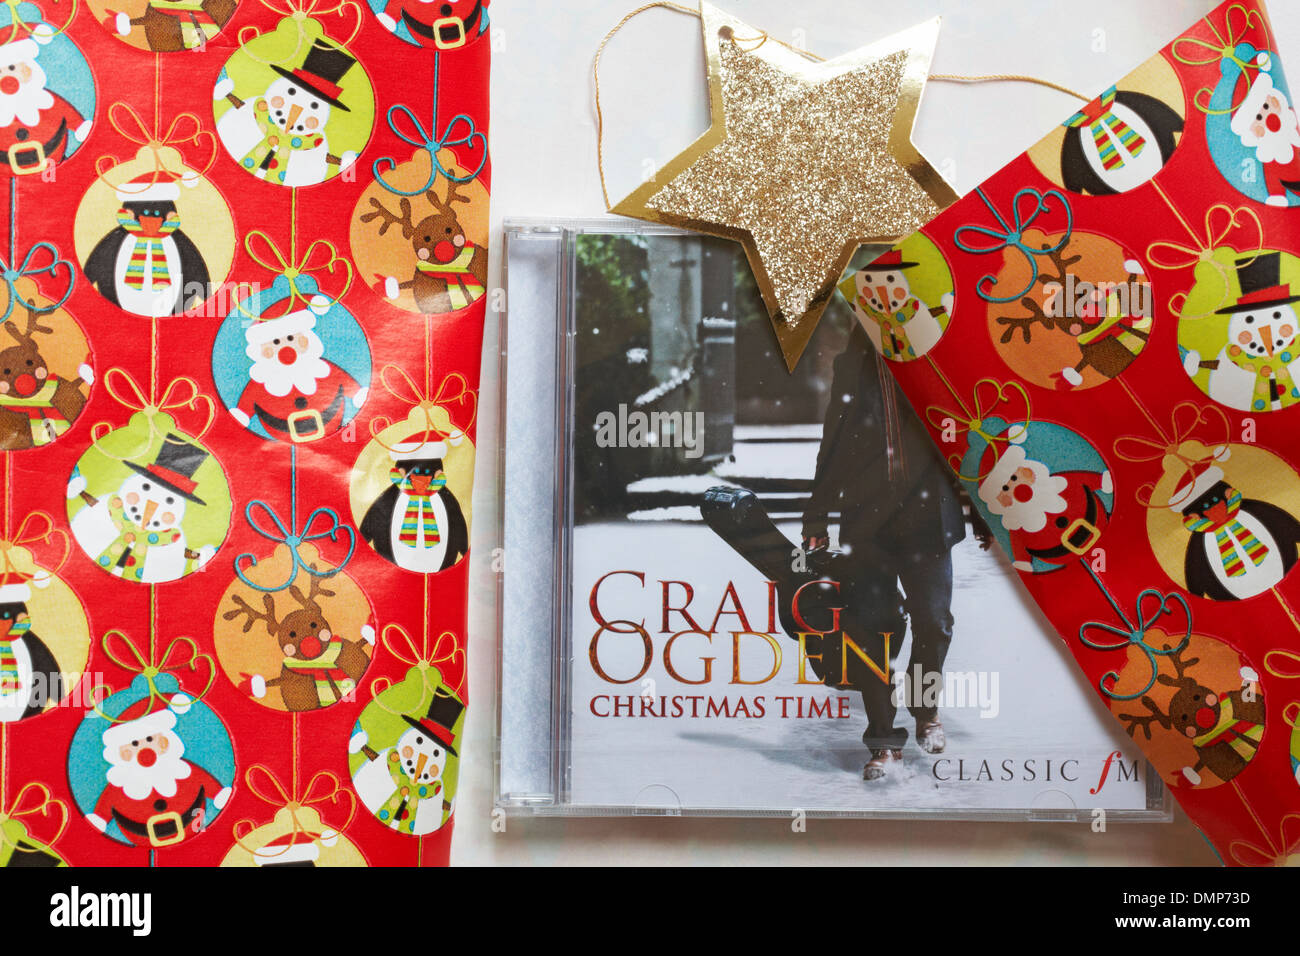 Christmas wrapping paper to wrap Craig Ogden Christmas Time CD compact disc as a present - Stock Image